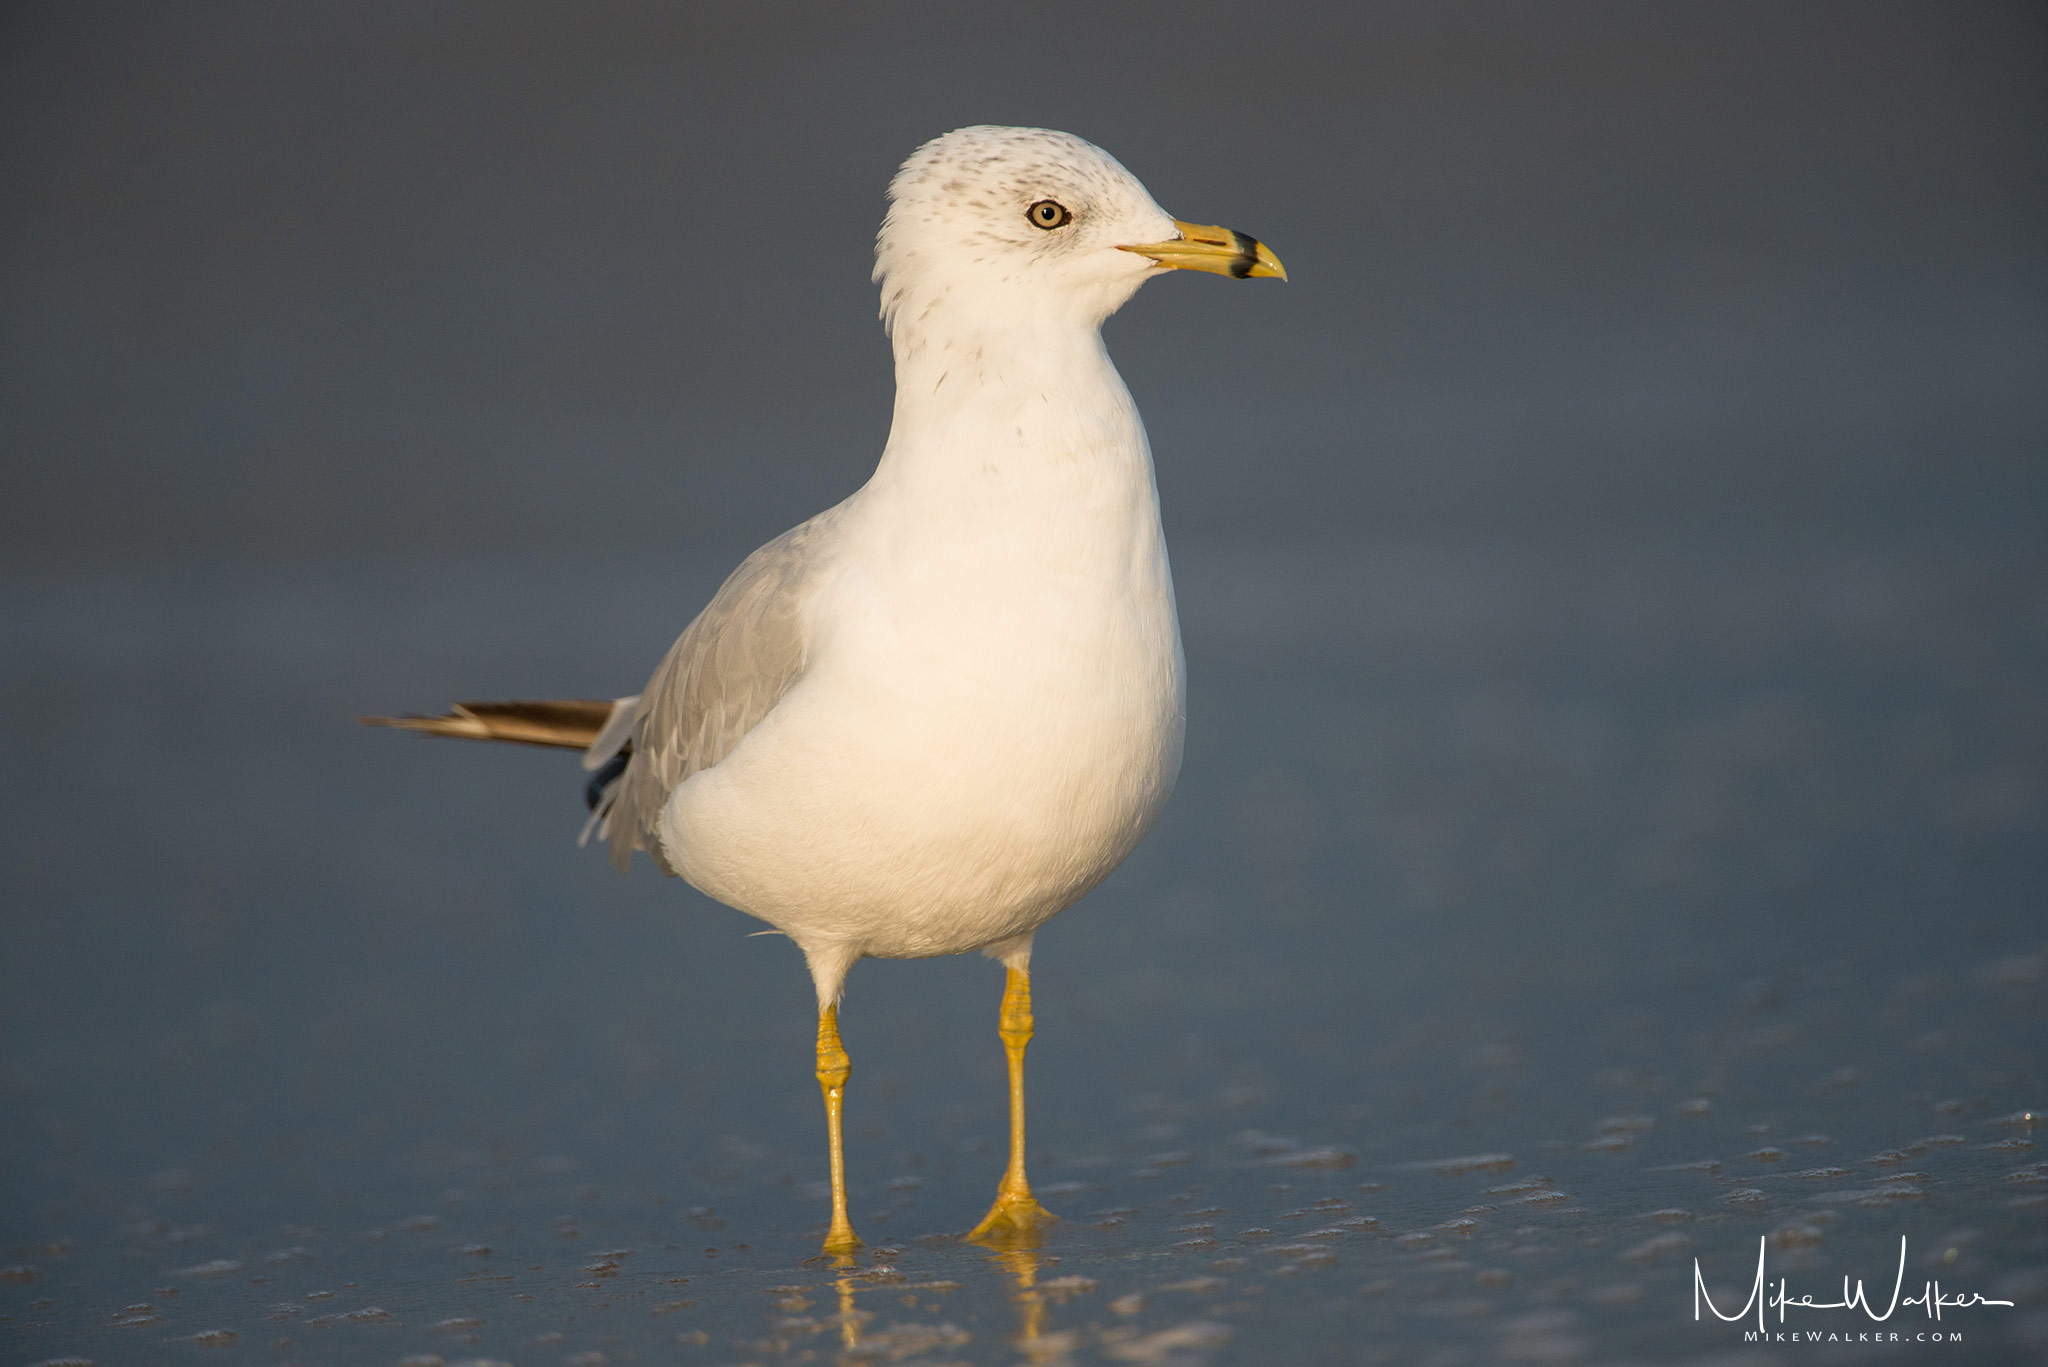 Seagull on the beach in the morning. Nature photography by Mike Walker.